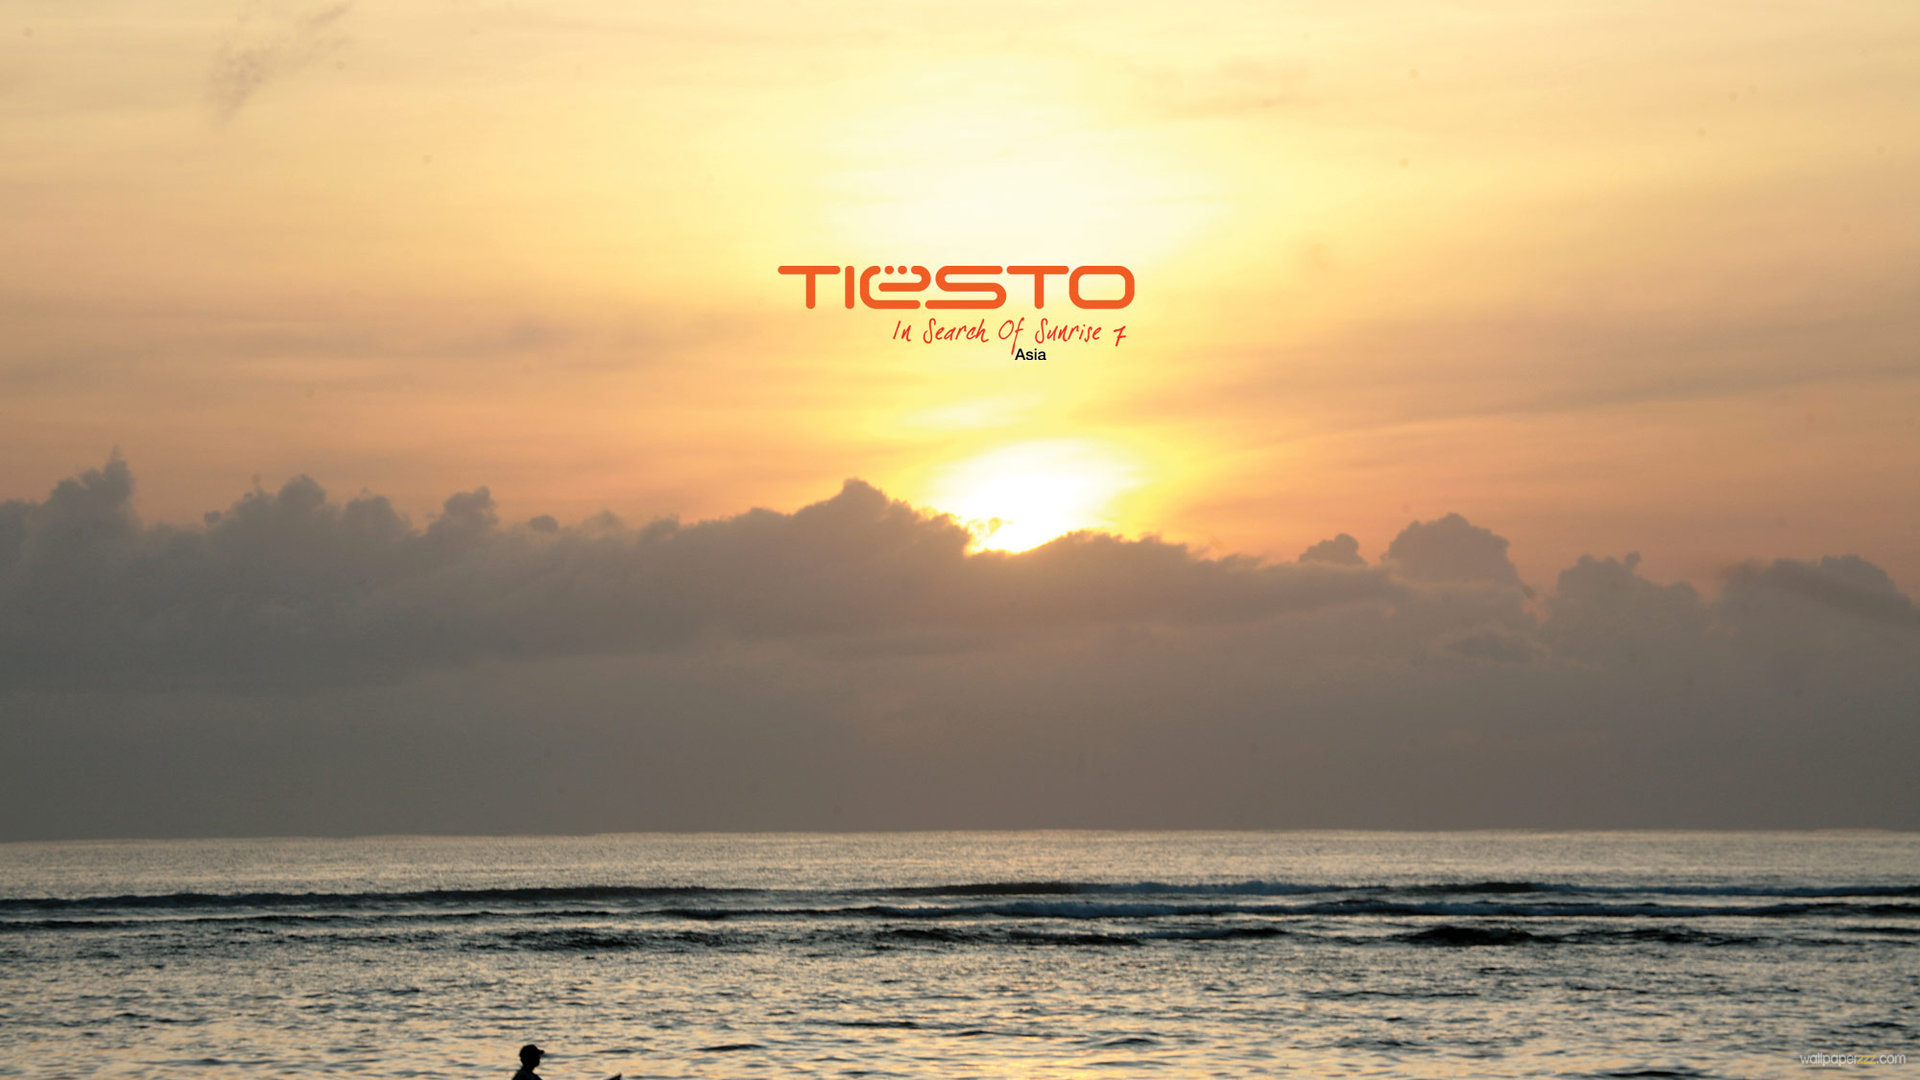 Tiesto Wallpapers Hd 126472 1920x1080